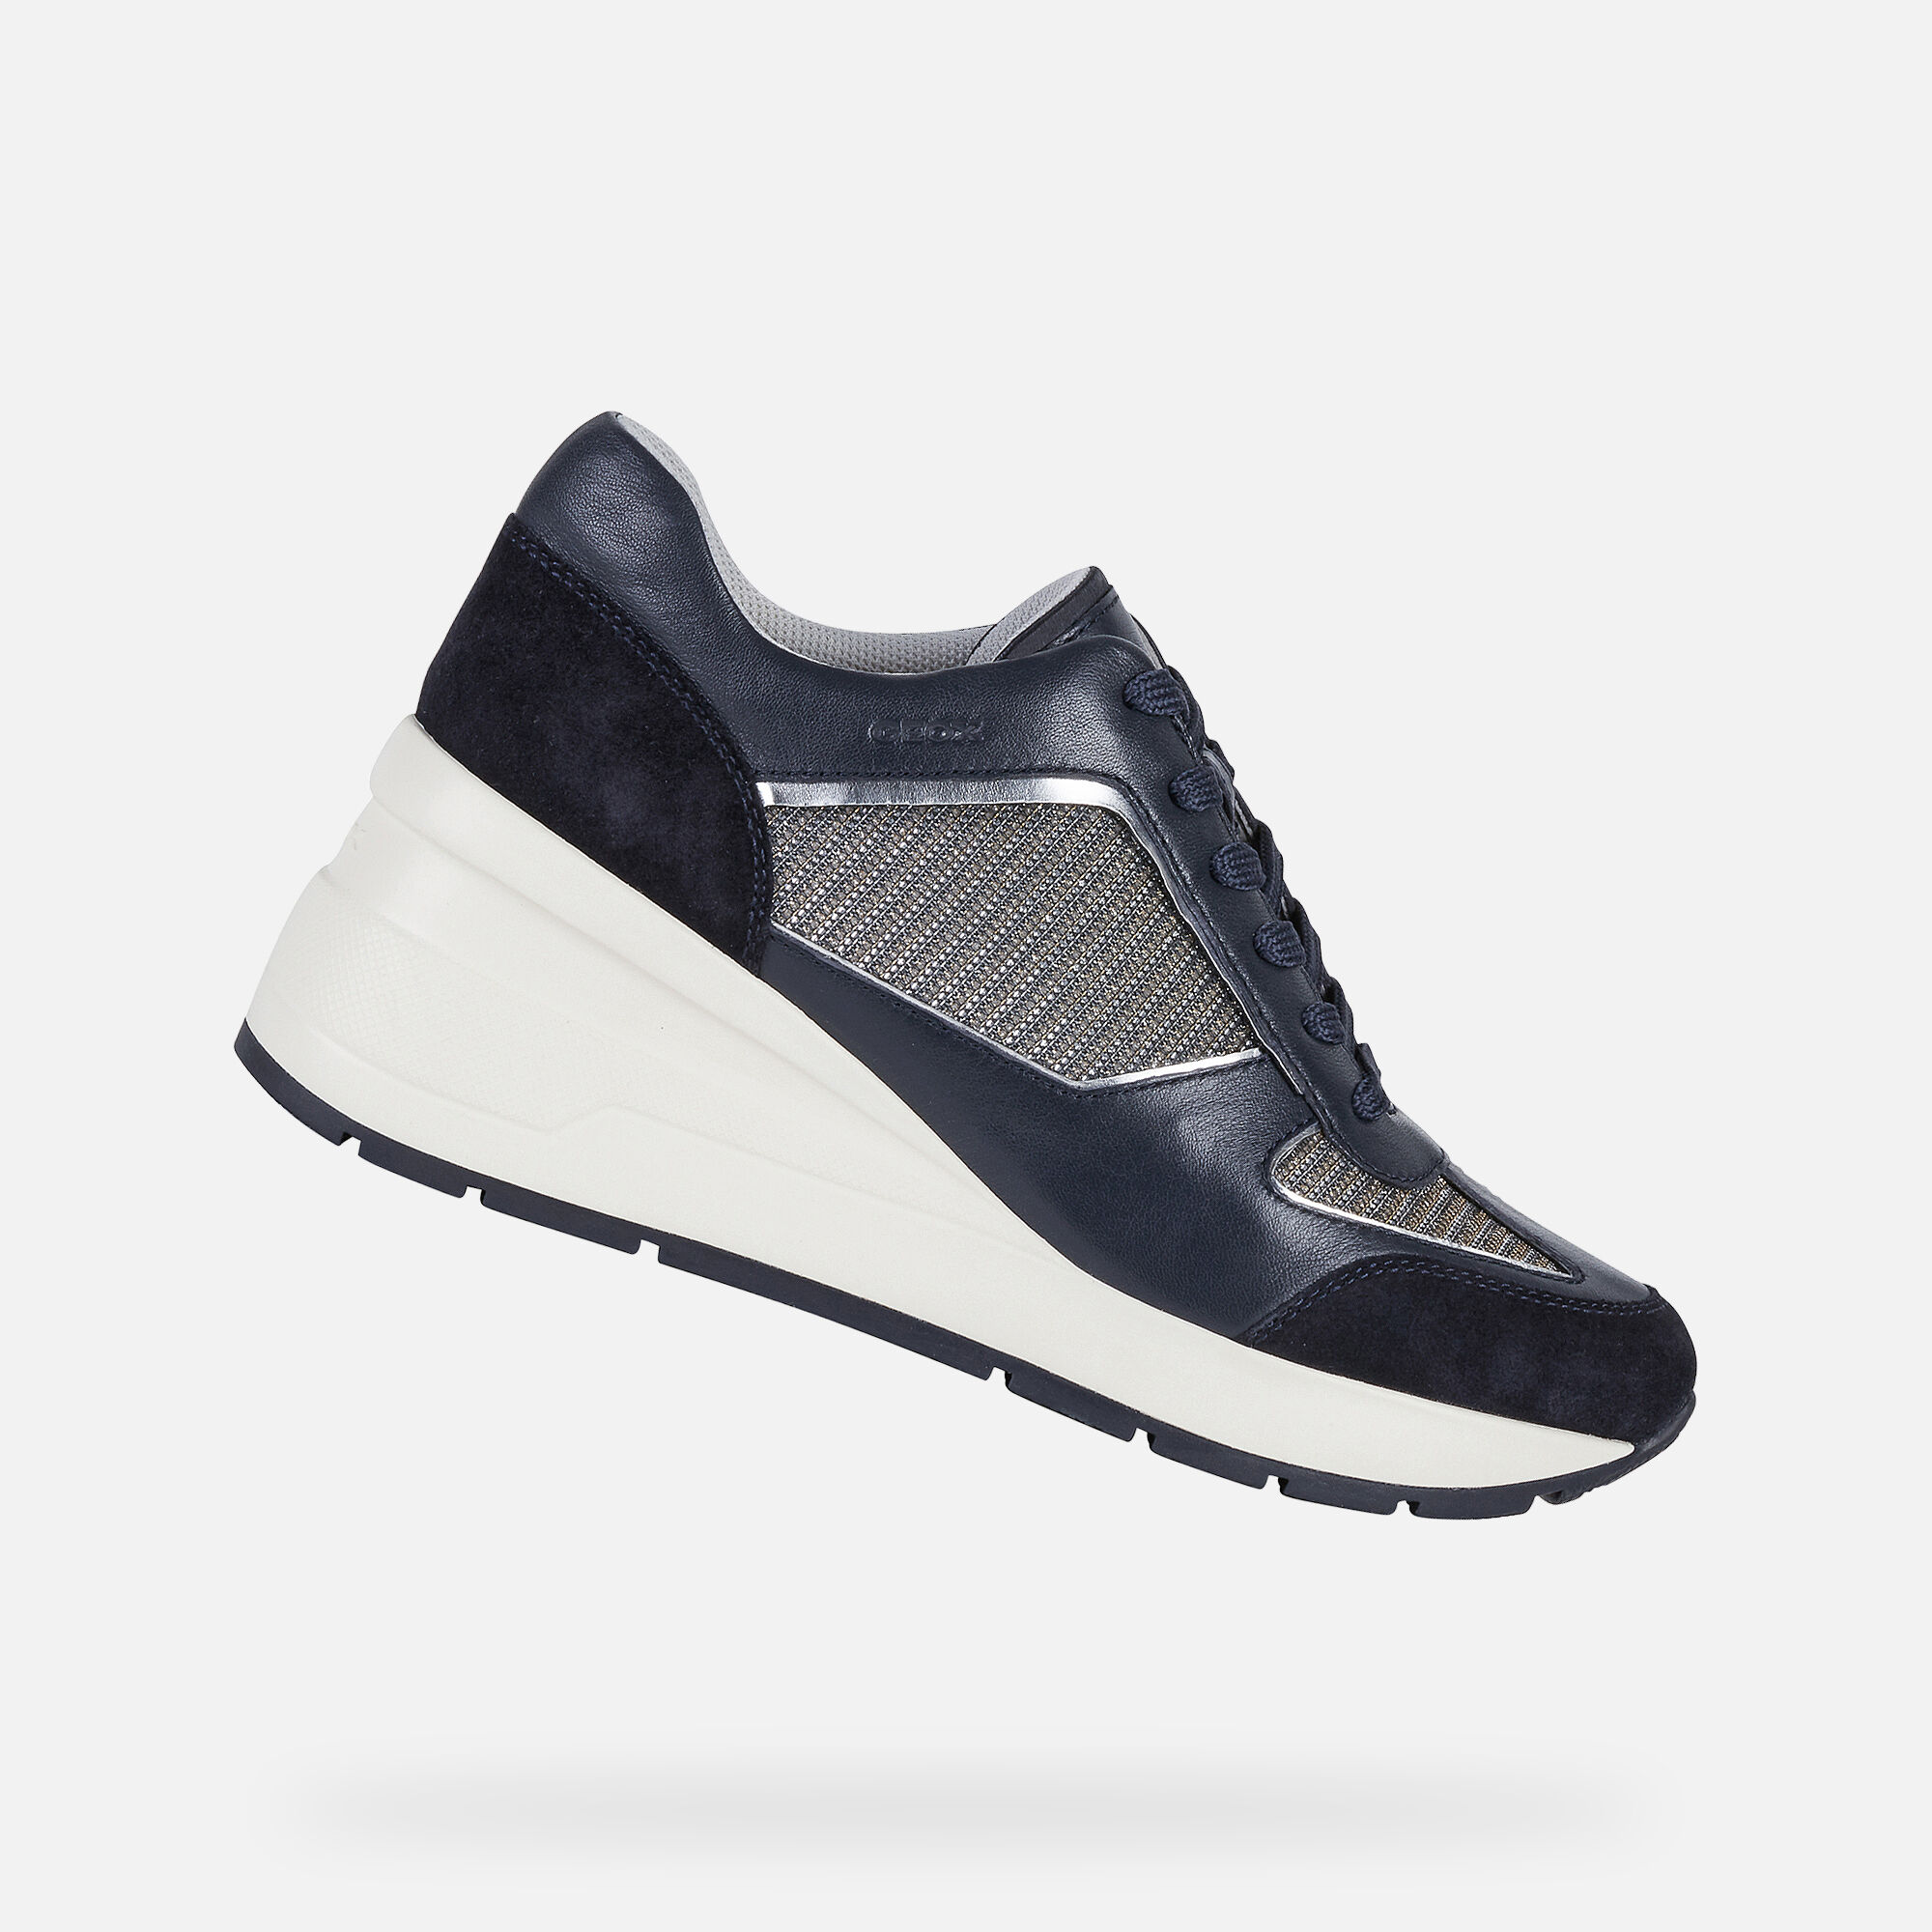 Geox Women shop online shoes, sneakers, pumps and more at